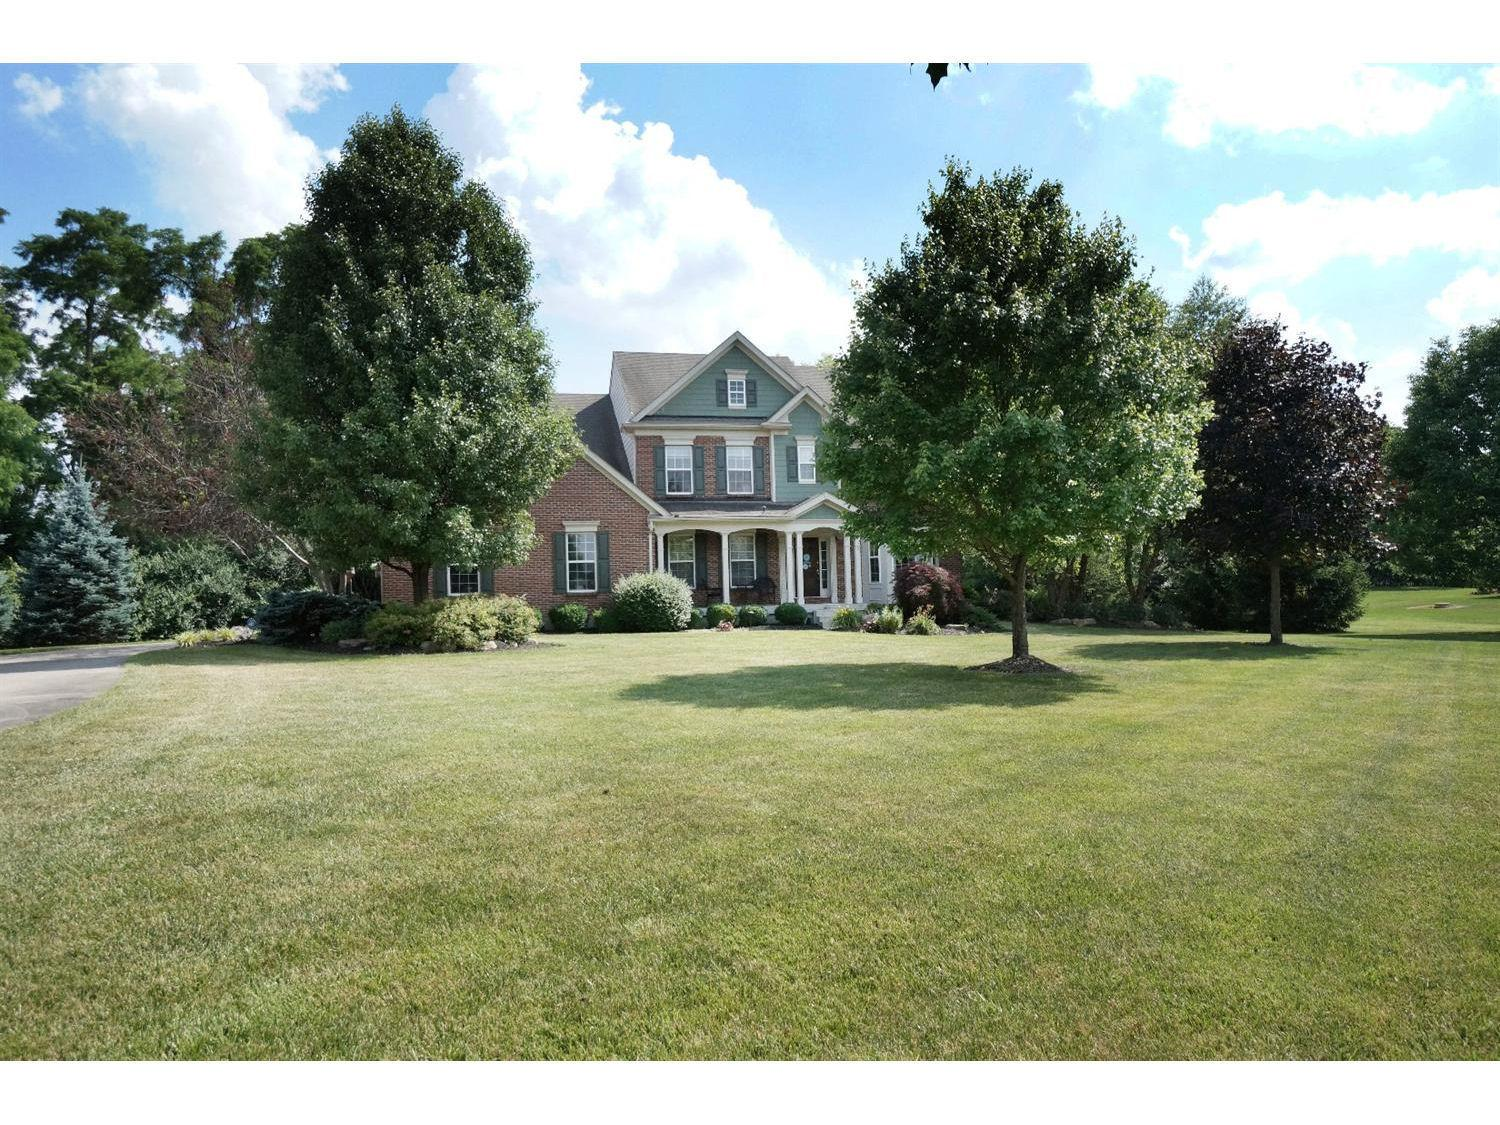 3145 Golden Fox Trail, Turtle Creek Twp, OH 45036